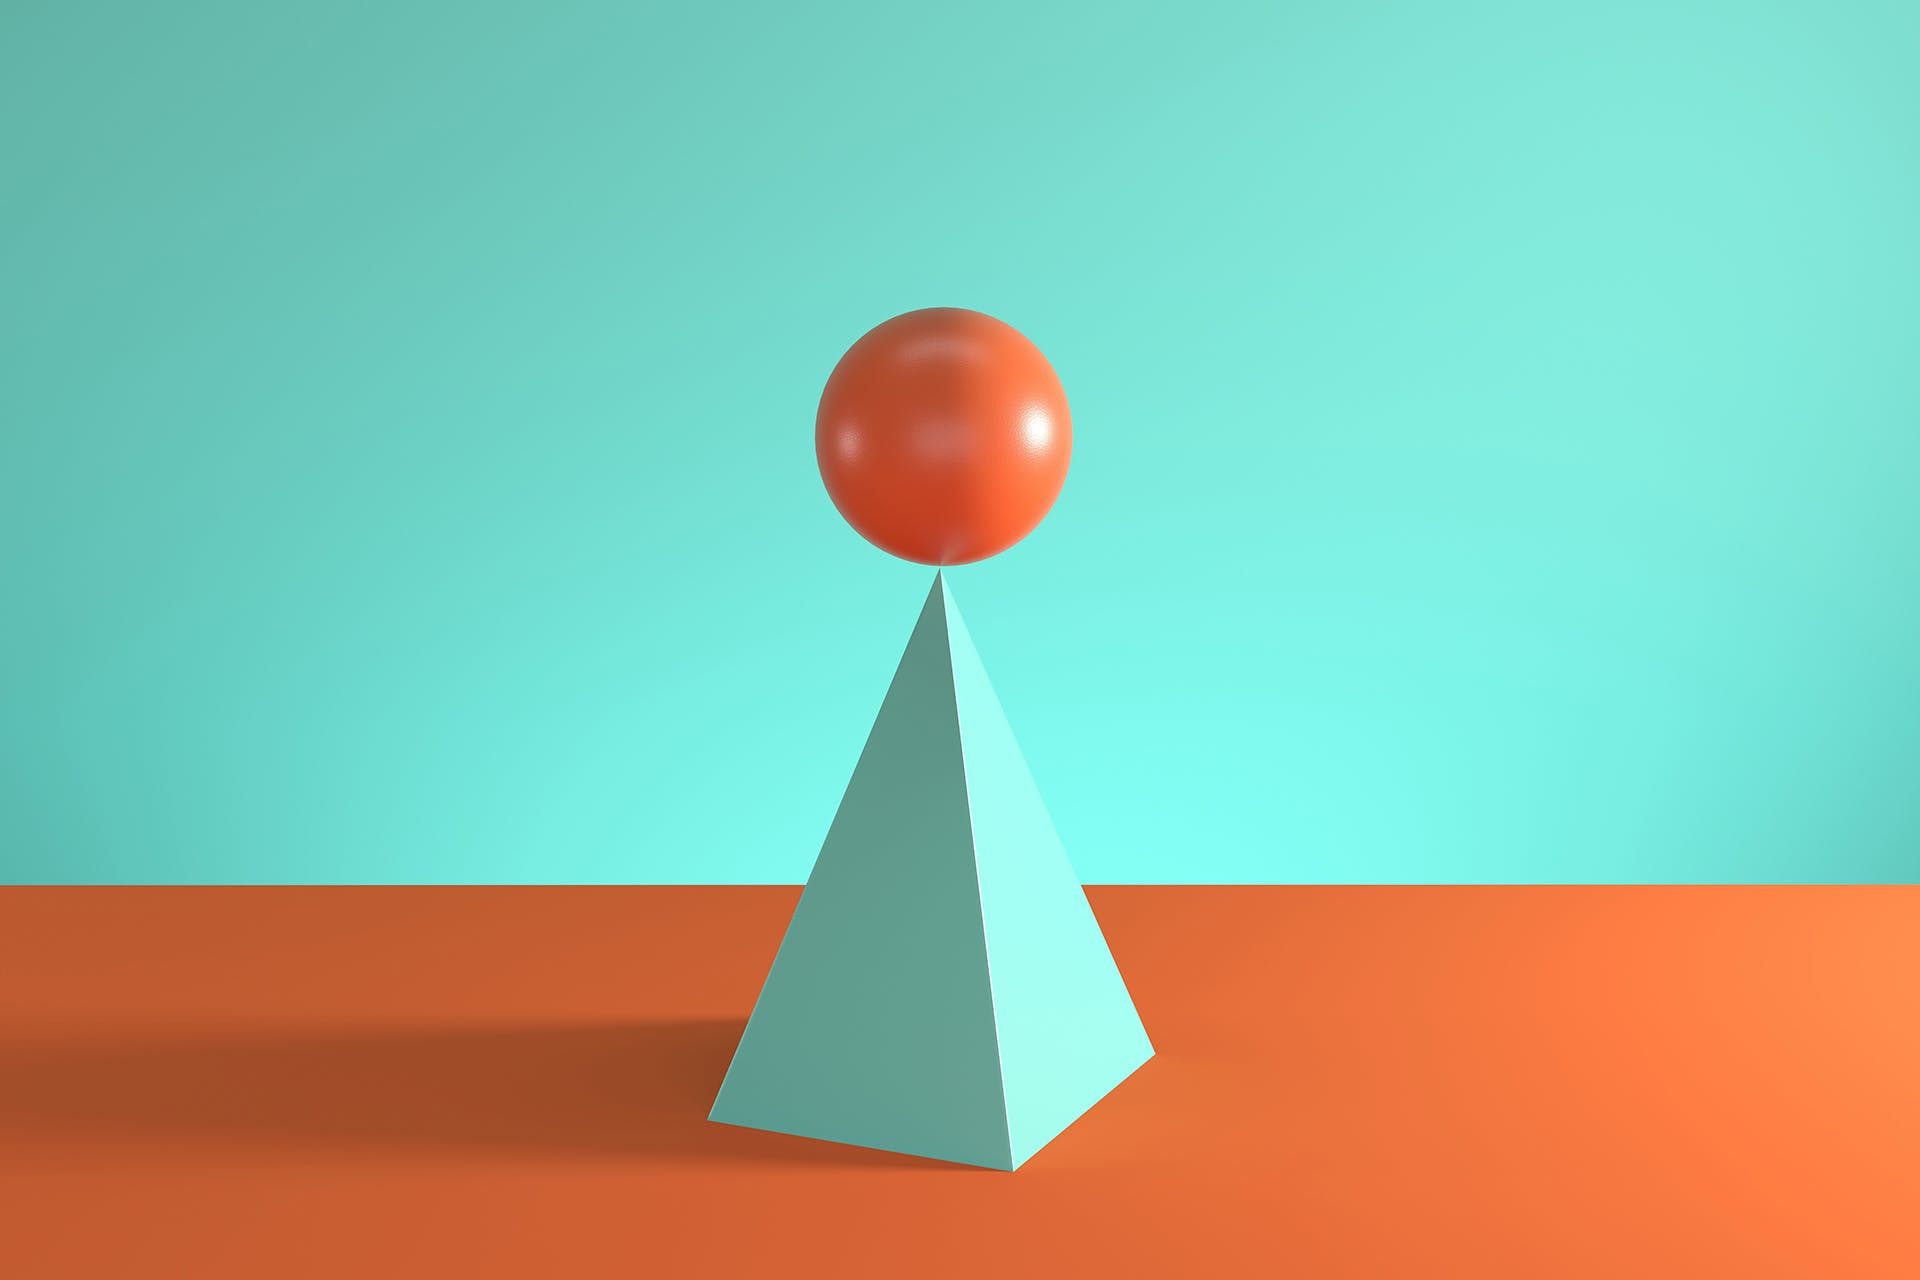 Building a brand strategy framework takes finesse and balance, which is why this image of an orange sphere balanced atop a teal prism is a fitting metaphor for the skill required in assembling a brand strategy.